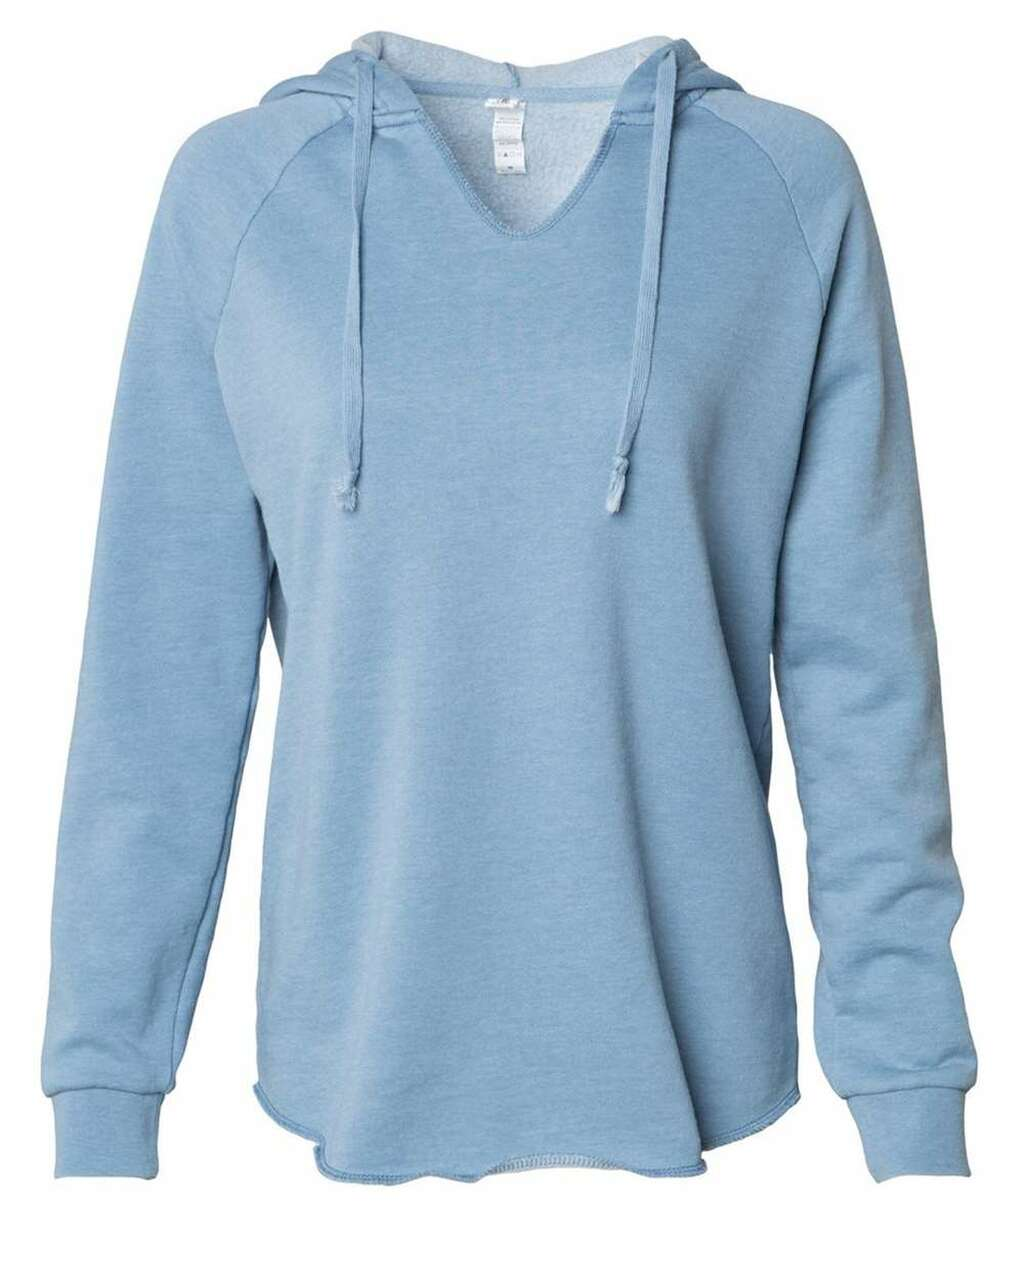 PRM2500 Independent Trading Co. Women's California Wave Wash Hoodie